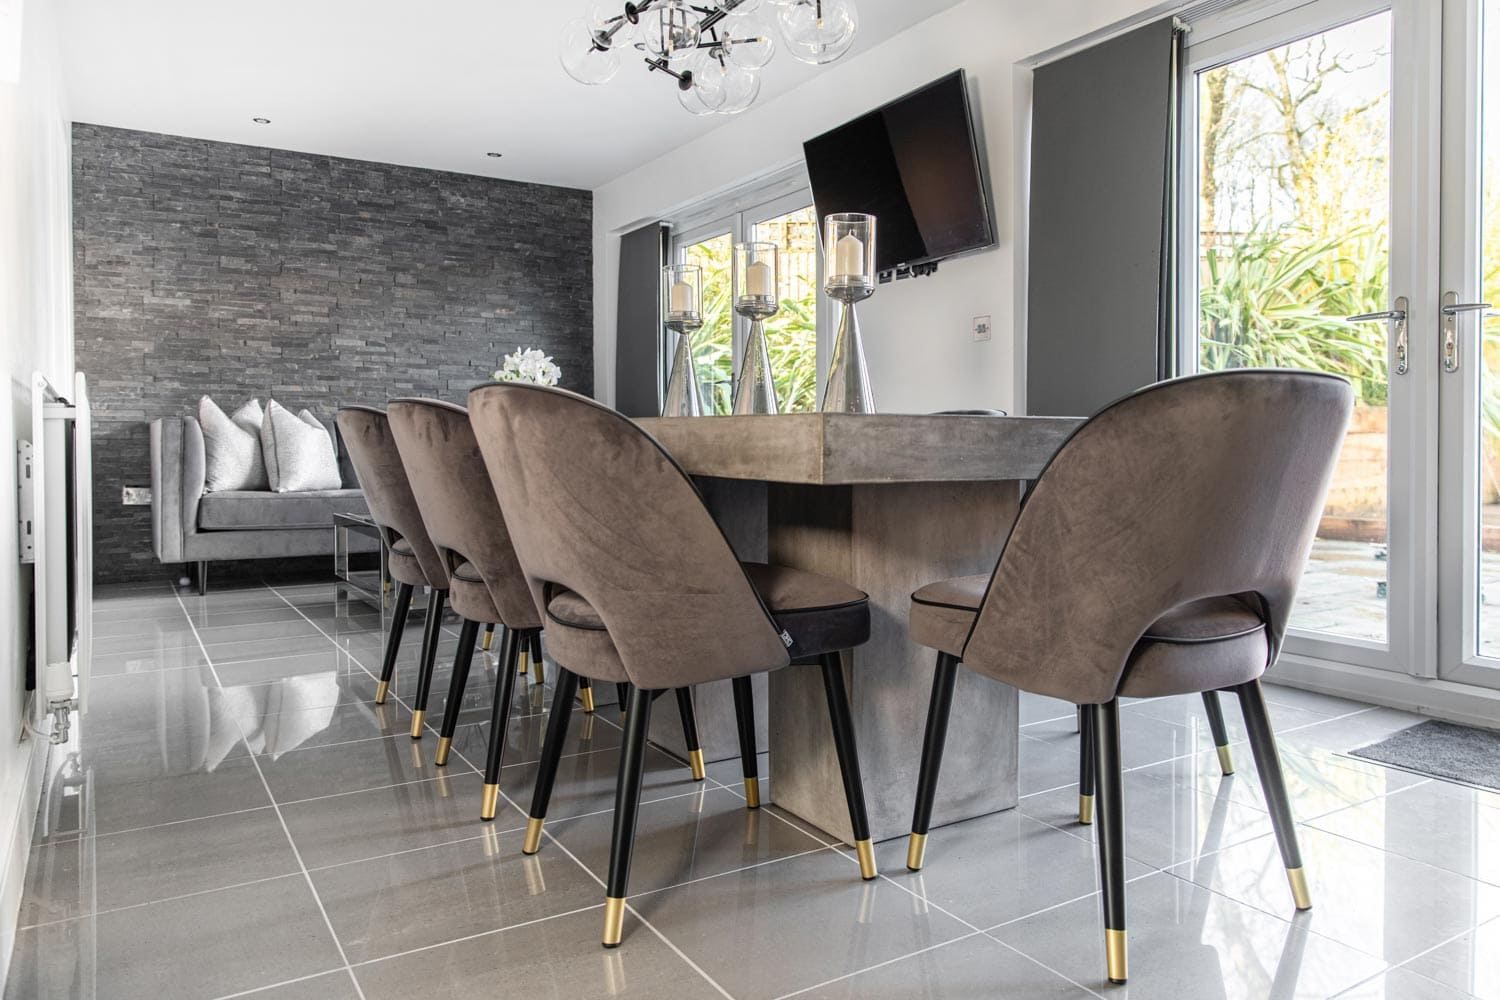 image of chairs at a dining table for interior photoshoot